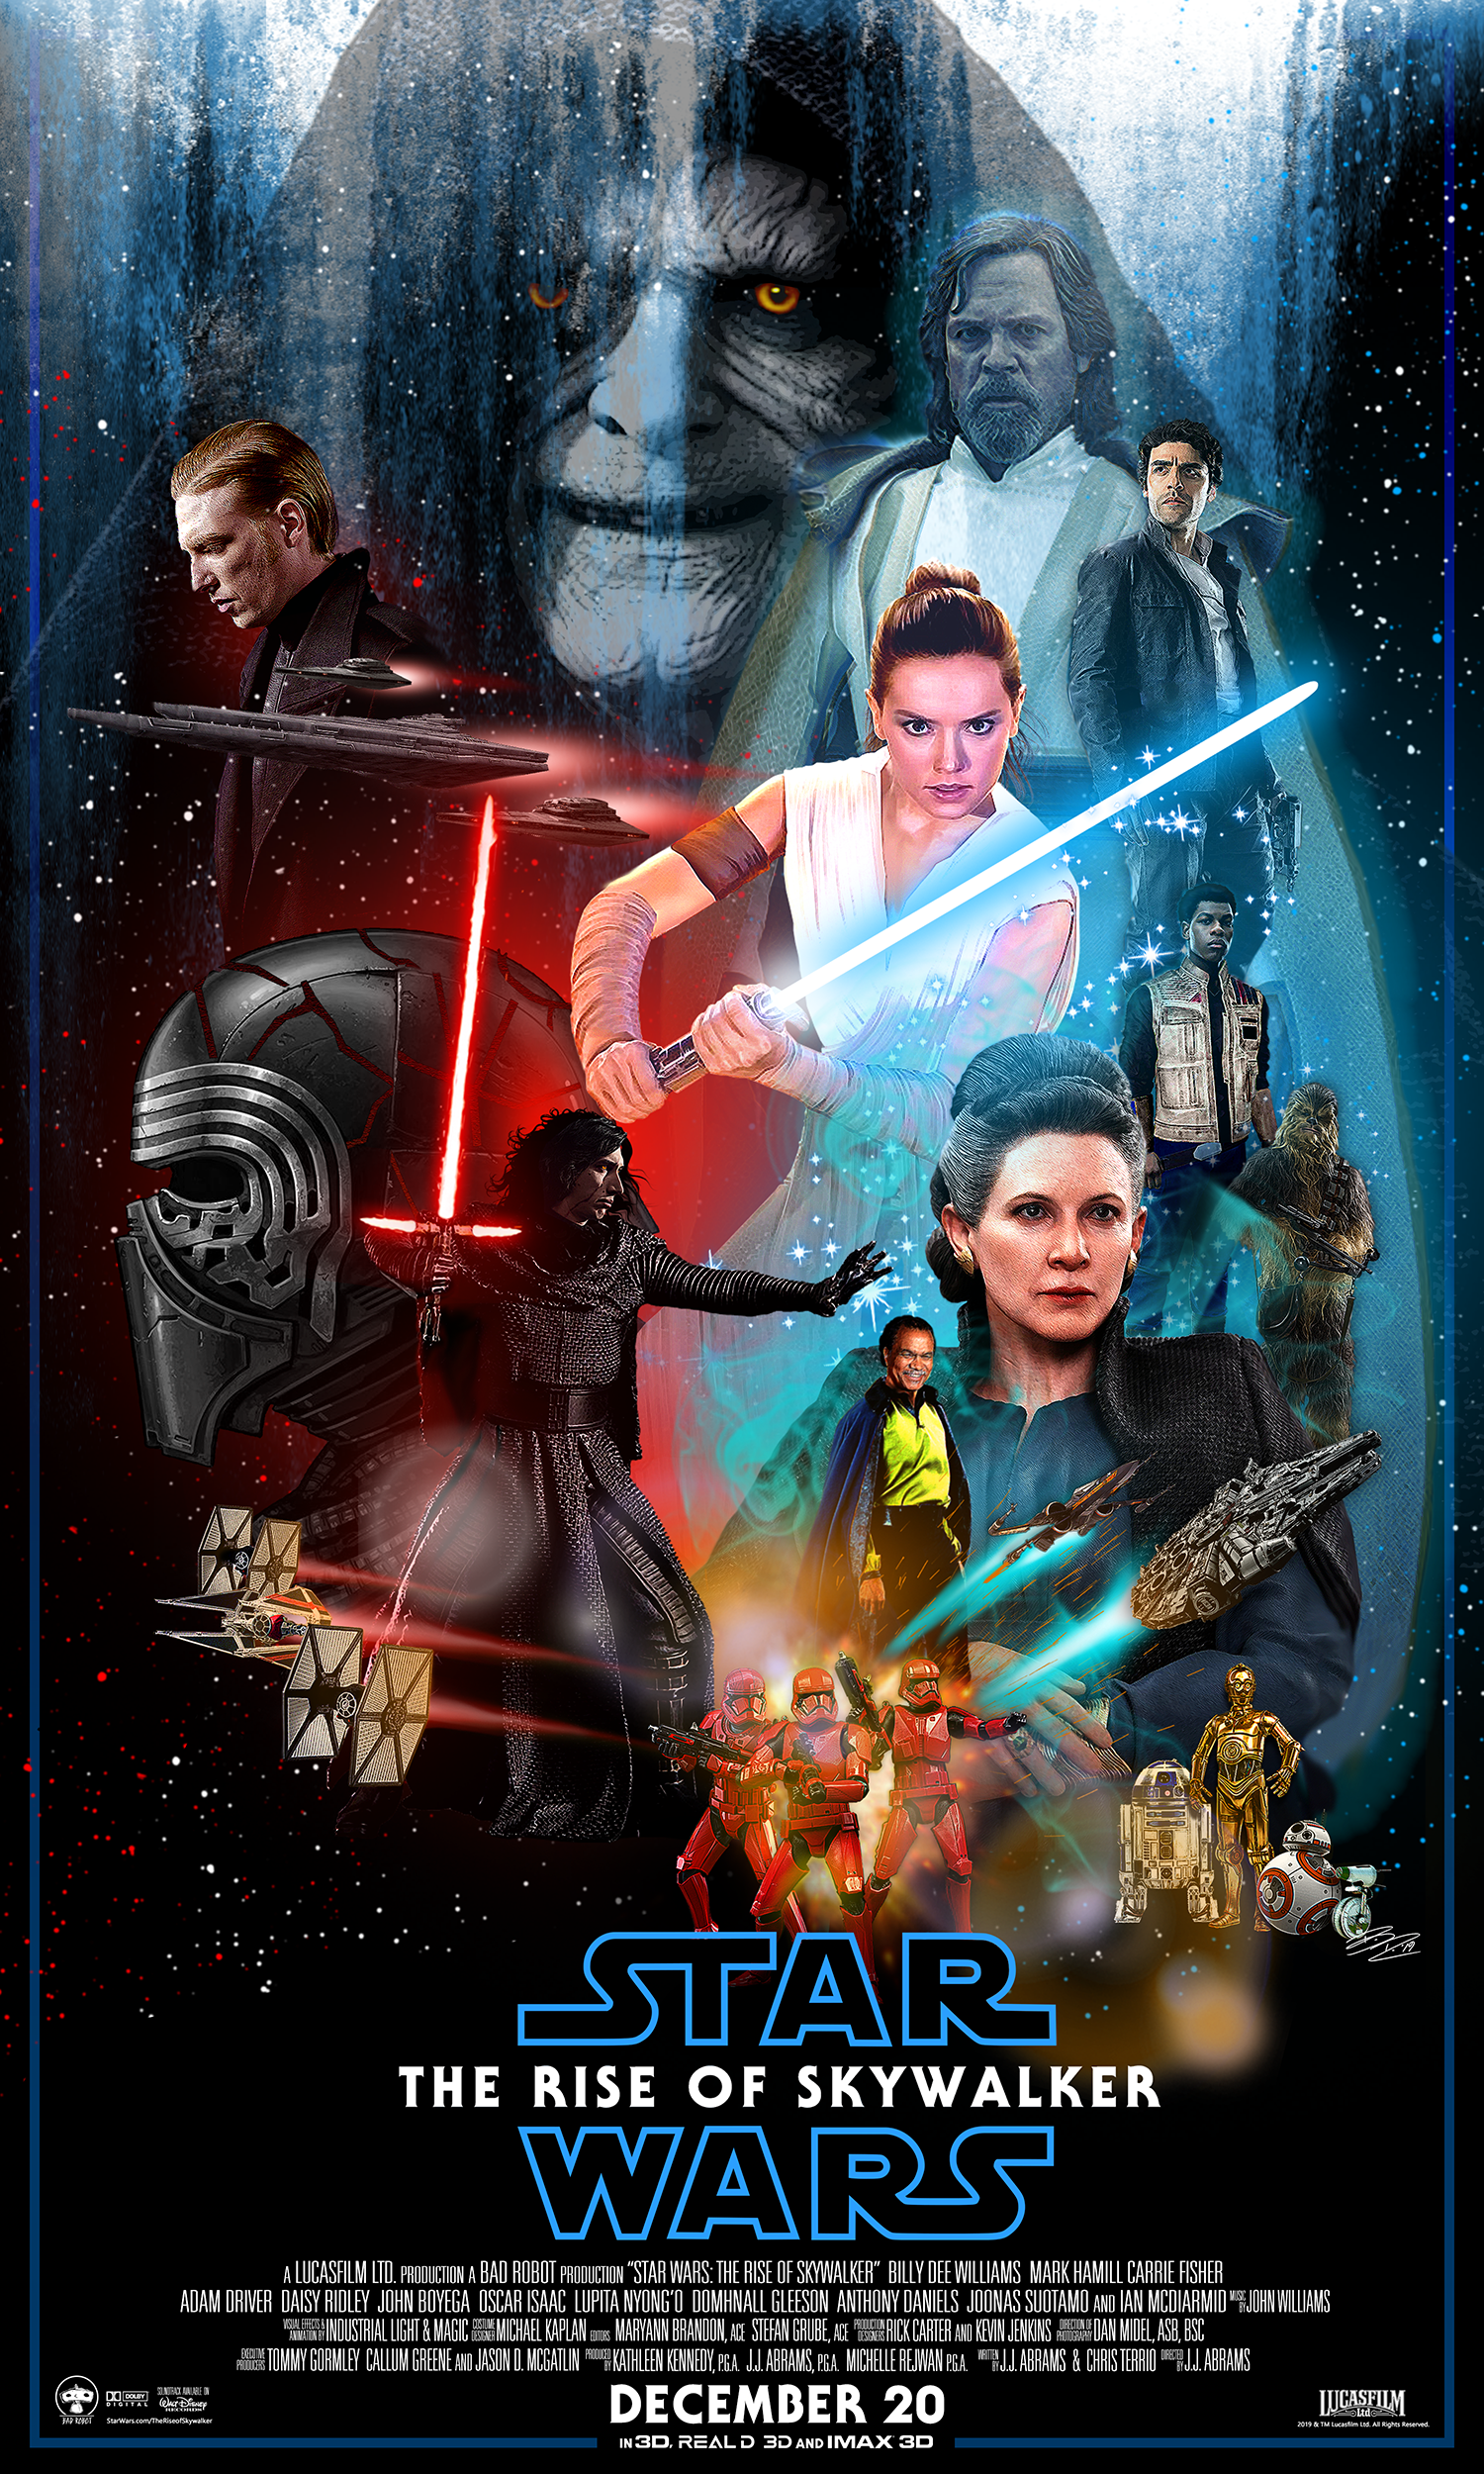 Star Wars The Rise Of Skywalker Poster By Brutalb330 On Deviantart